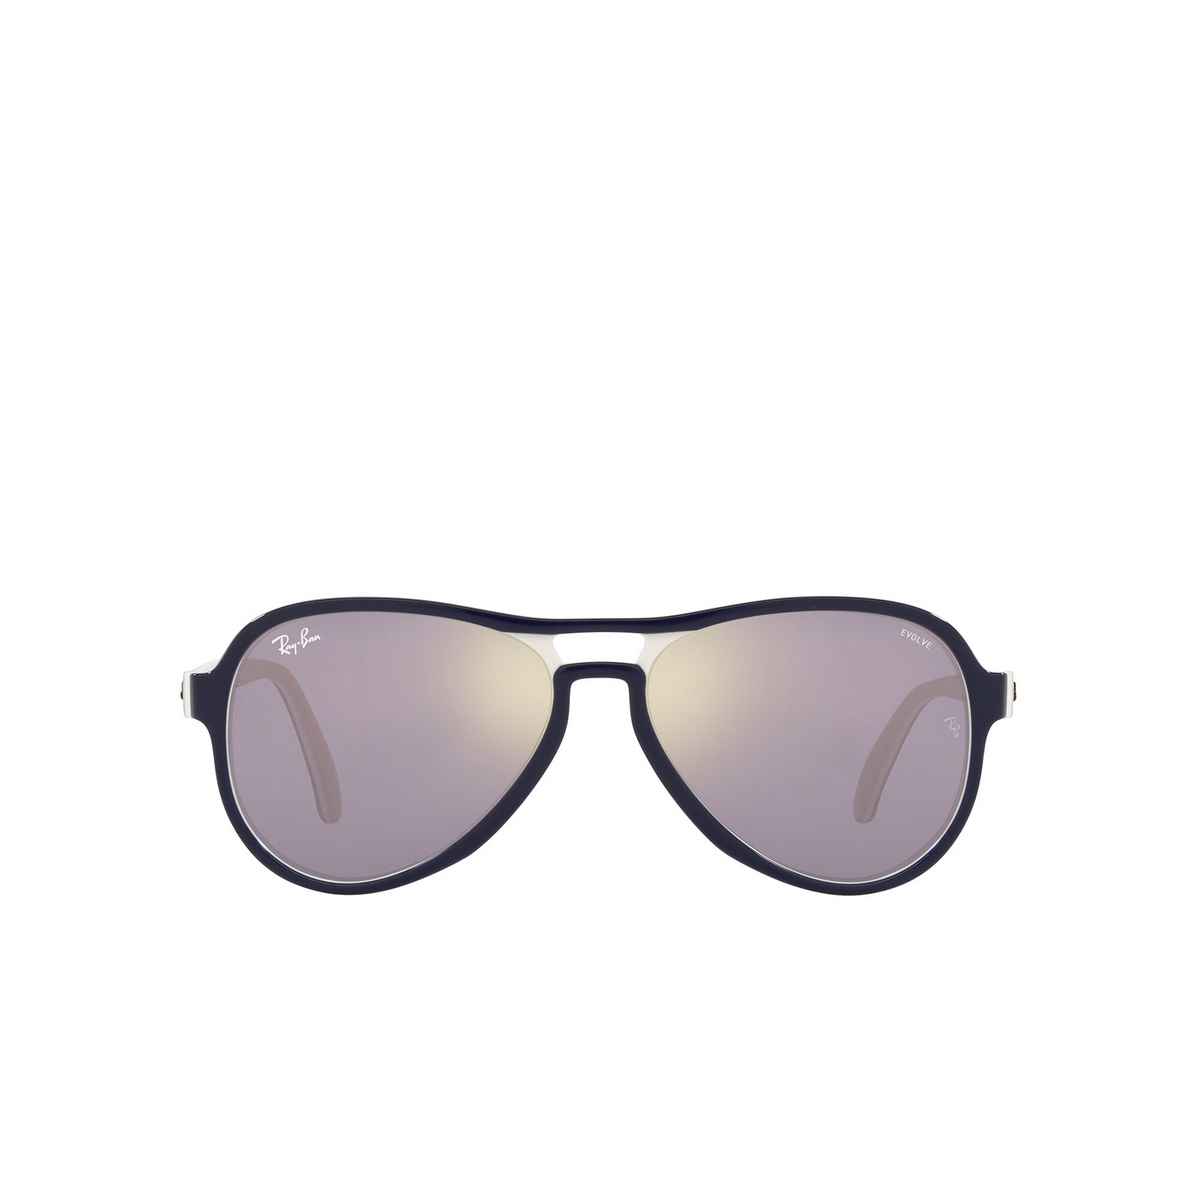 Ray-Ban® Aviator Sunglasses: Vagabond RB4355 color Blue Creamy Light Brown 6548B3 - front view.